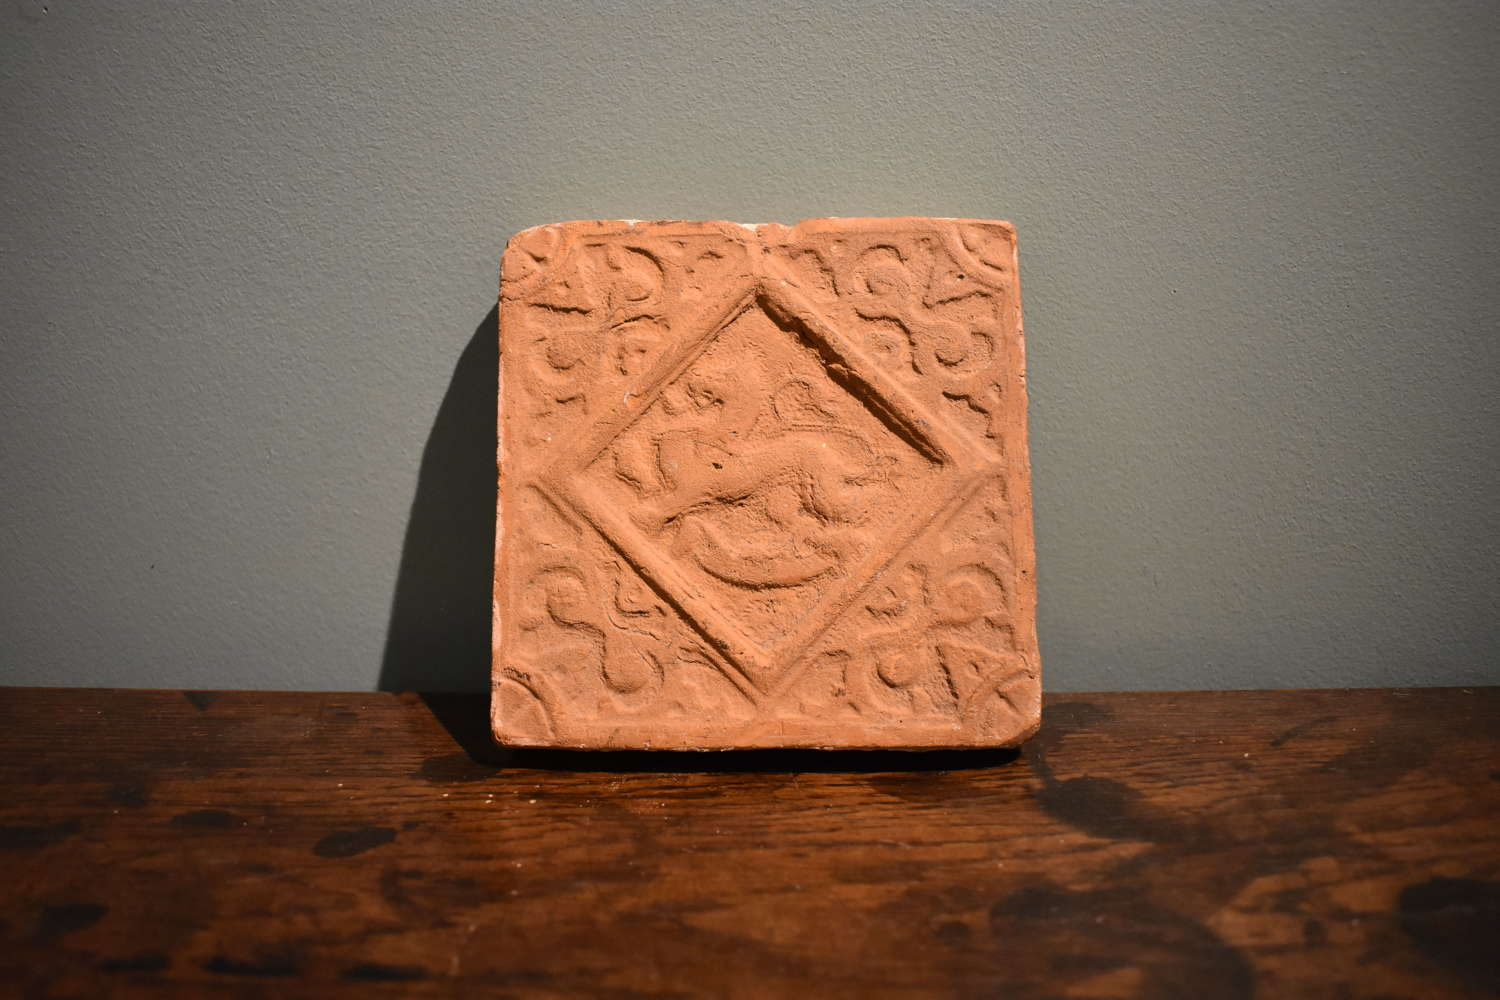 Tudor period Terracotta Tile with Mythical Beast Motif